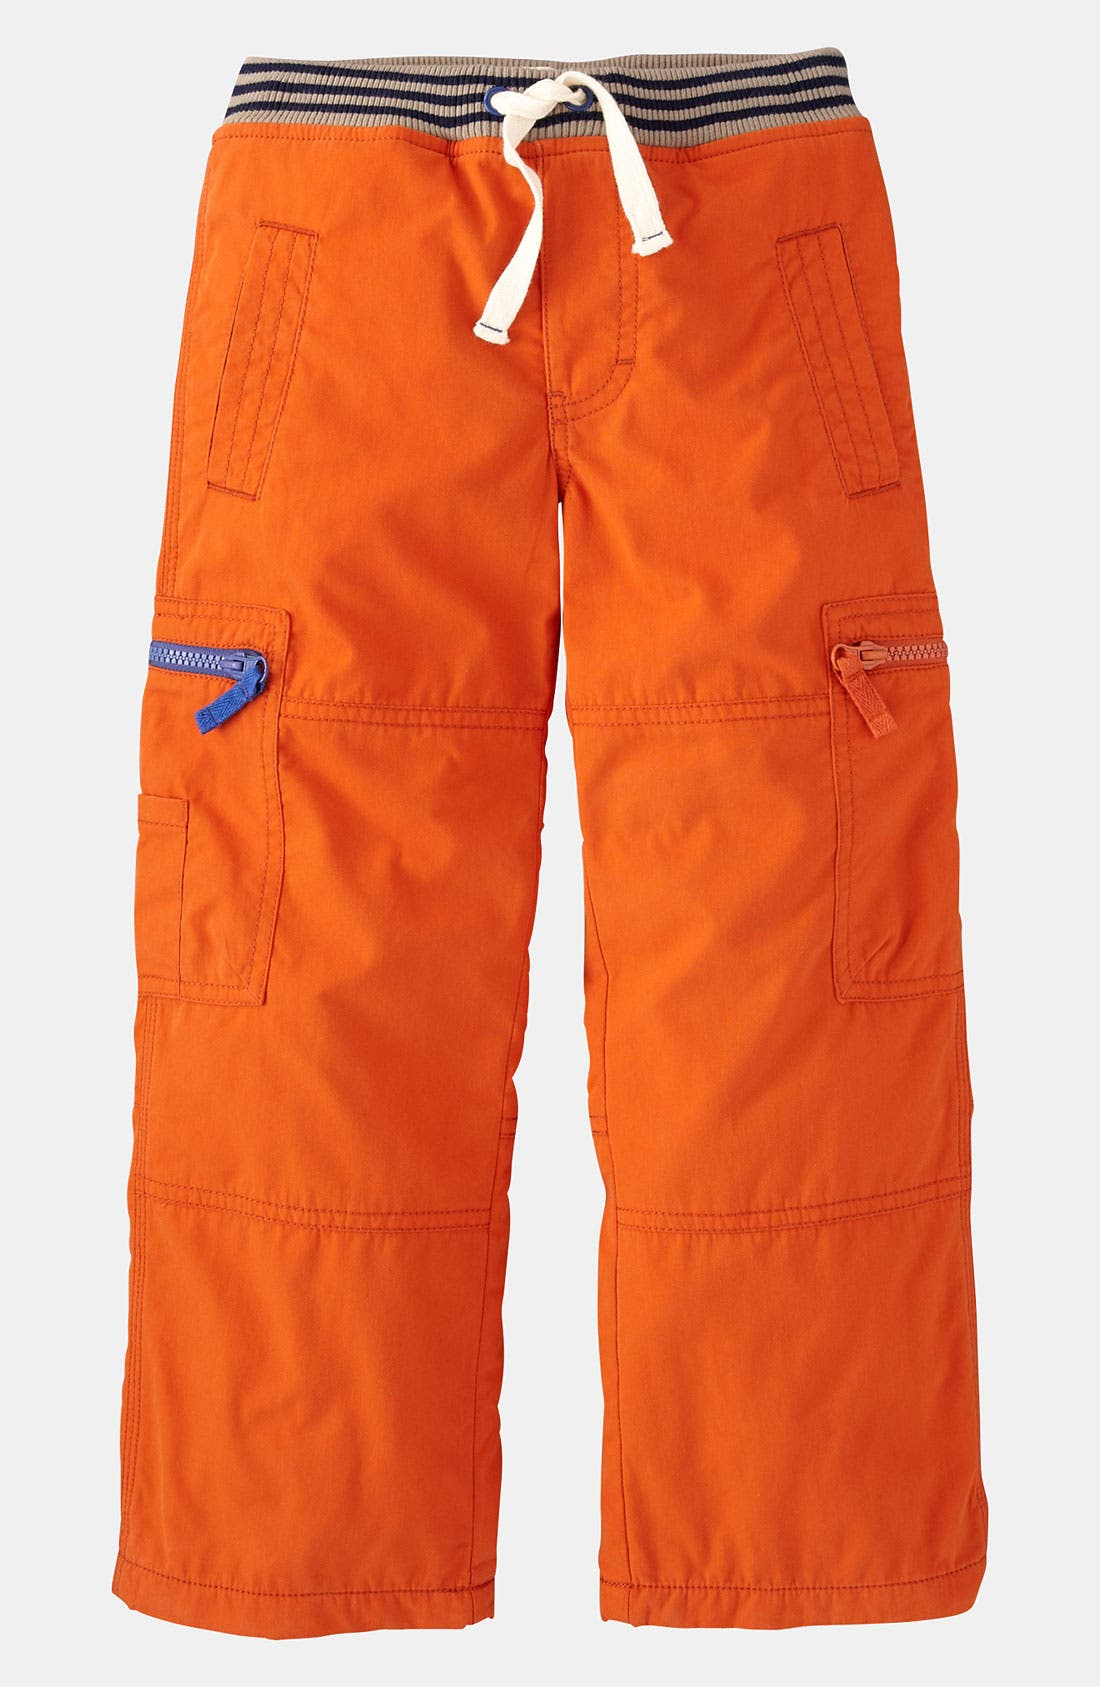 Alternate Image 1 Selected - Mini Boden Lined Cargo Pants (Little Boys & Big Boys)